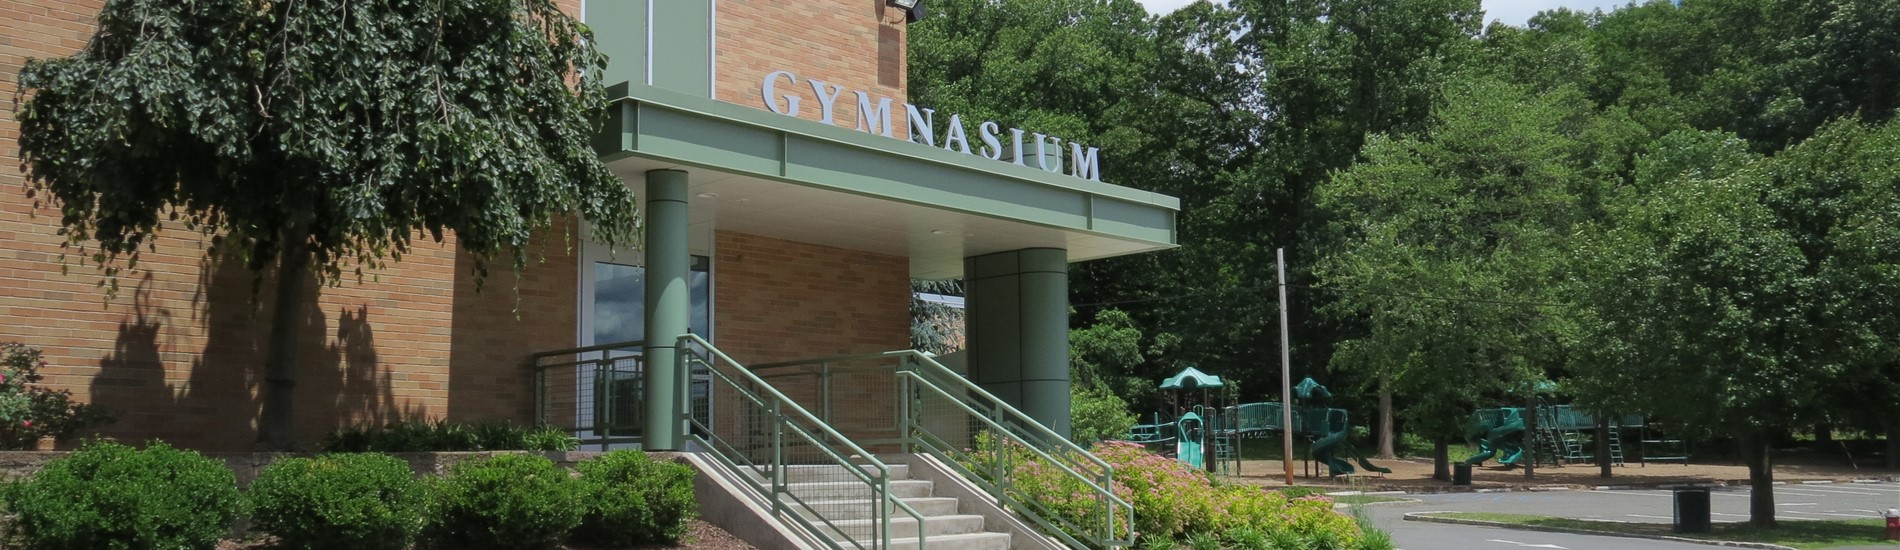 Dorchester School Gymnasium entrance